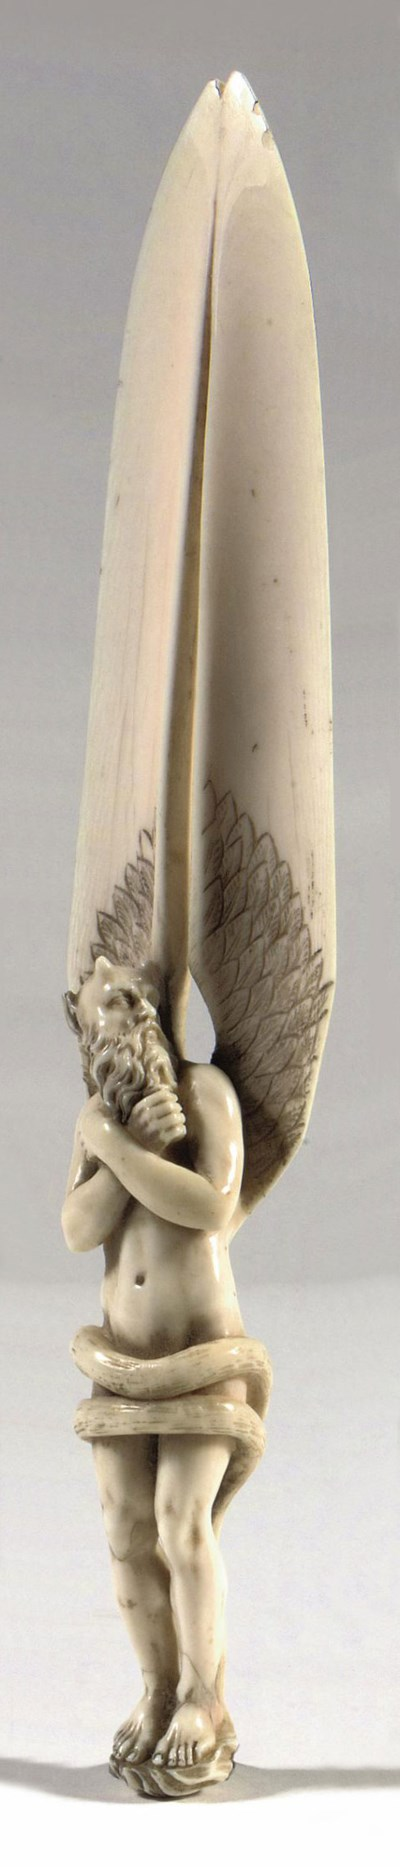 A CARVED IVORY PAPER KNIFE